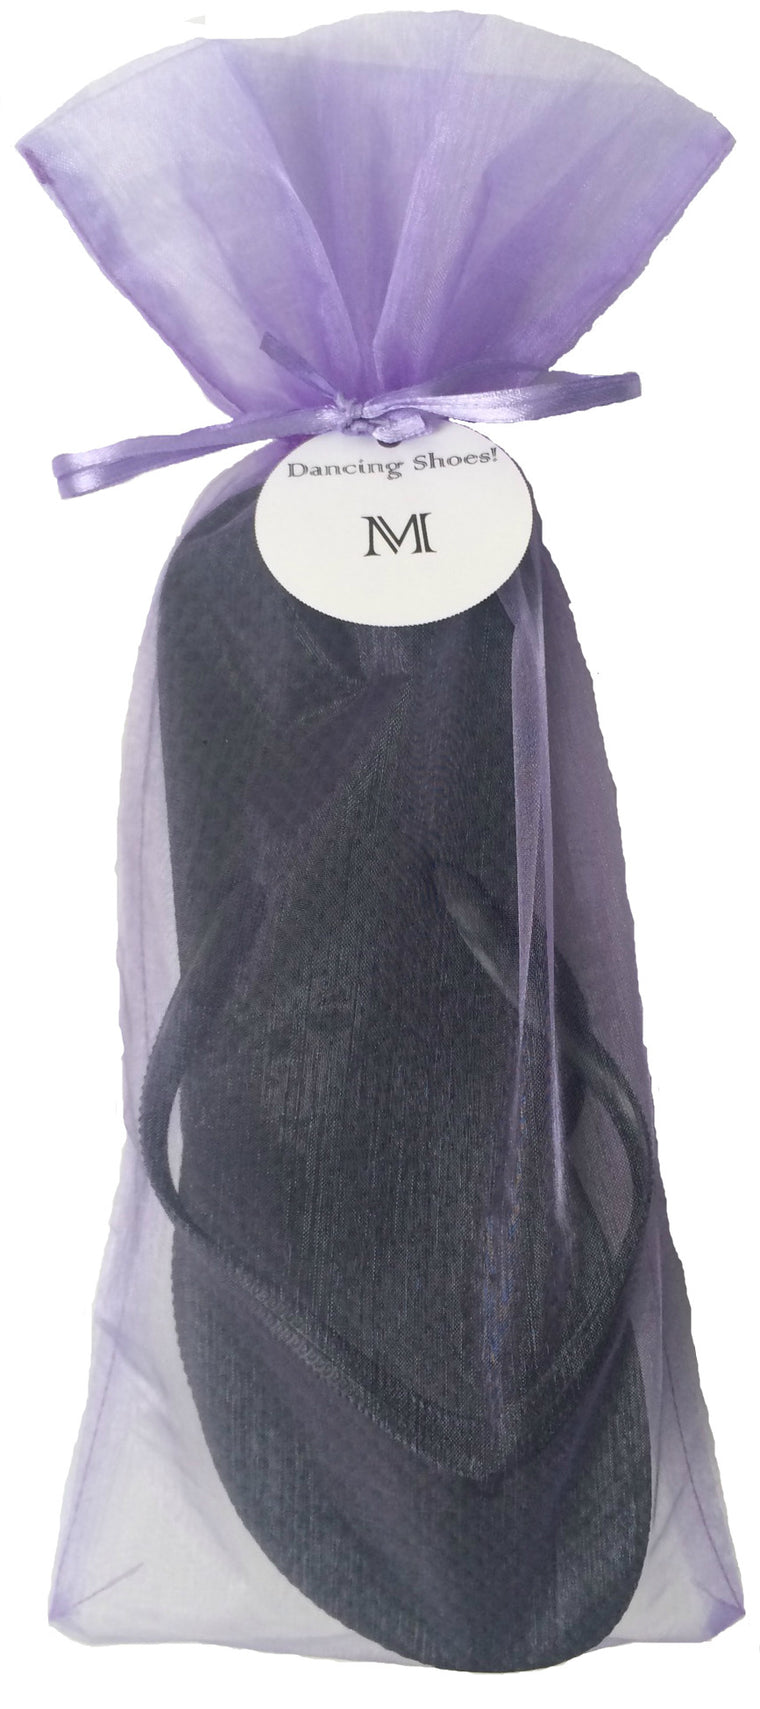 Classic Black Flip Flop with Lavender Organza Bag - My Party Saver. Your Guest's Best Friend.™